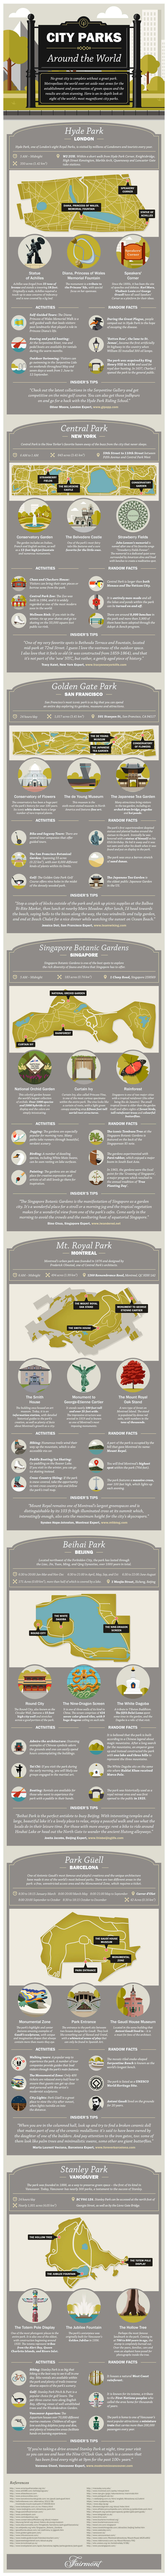 Discover some of the greatest city parks around the world with this handy infographic.